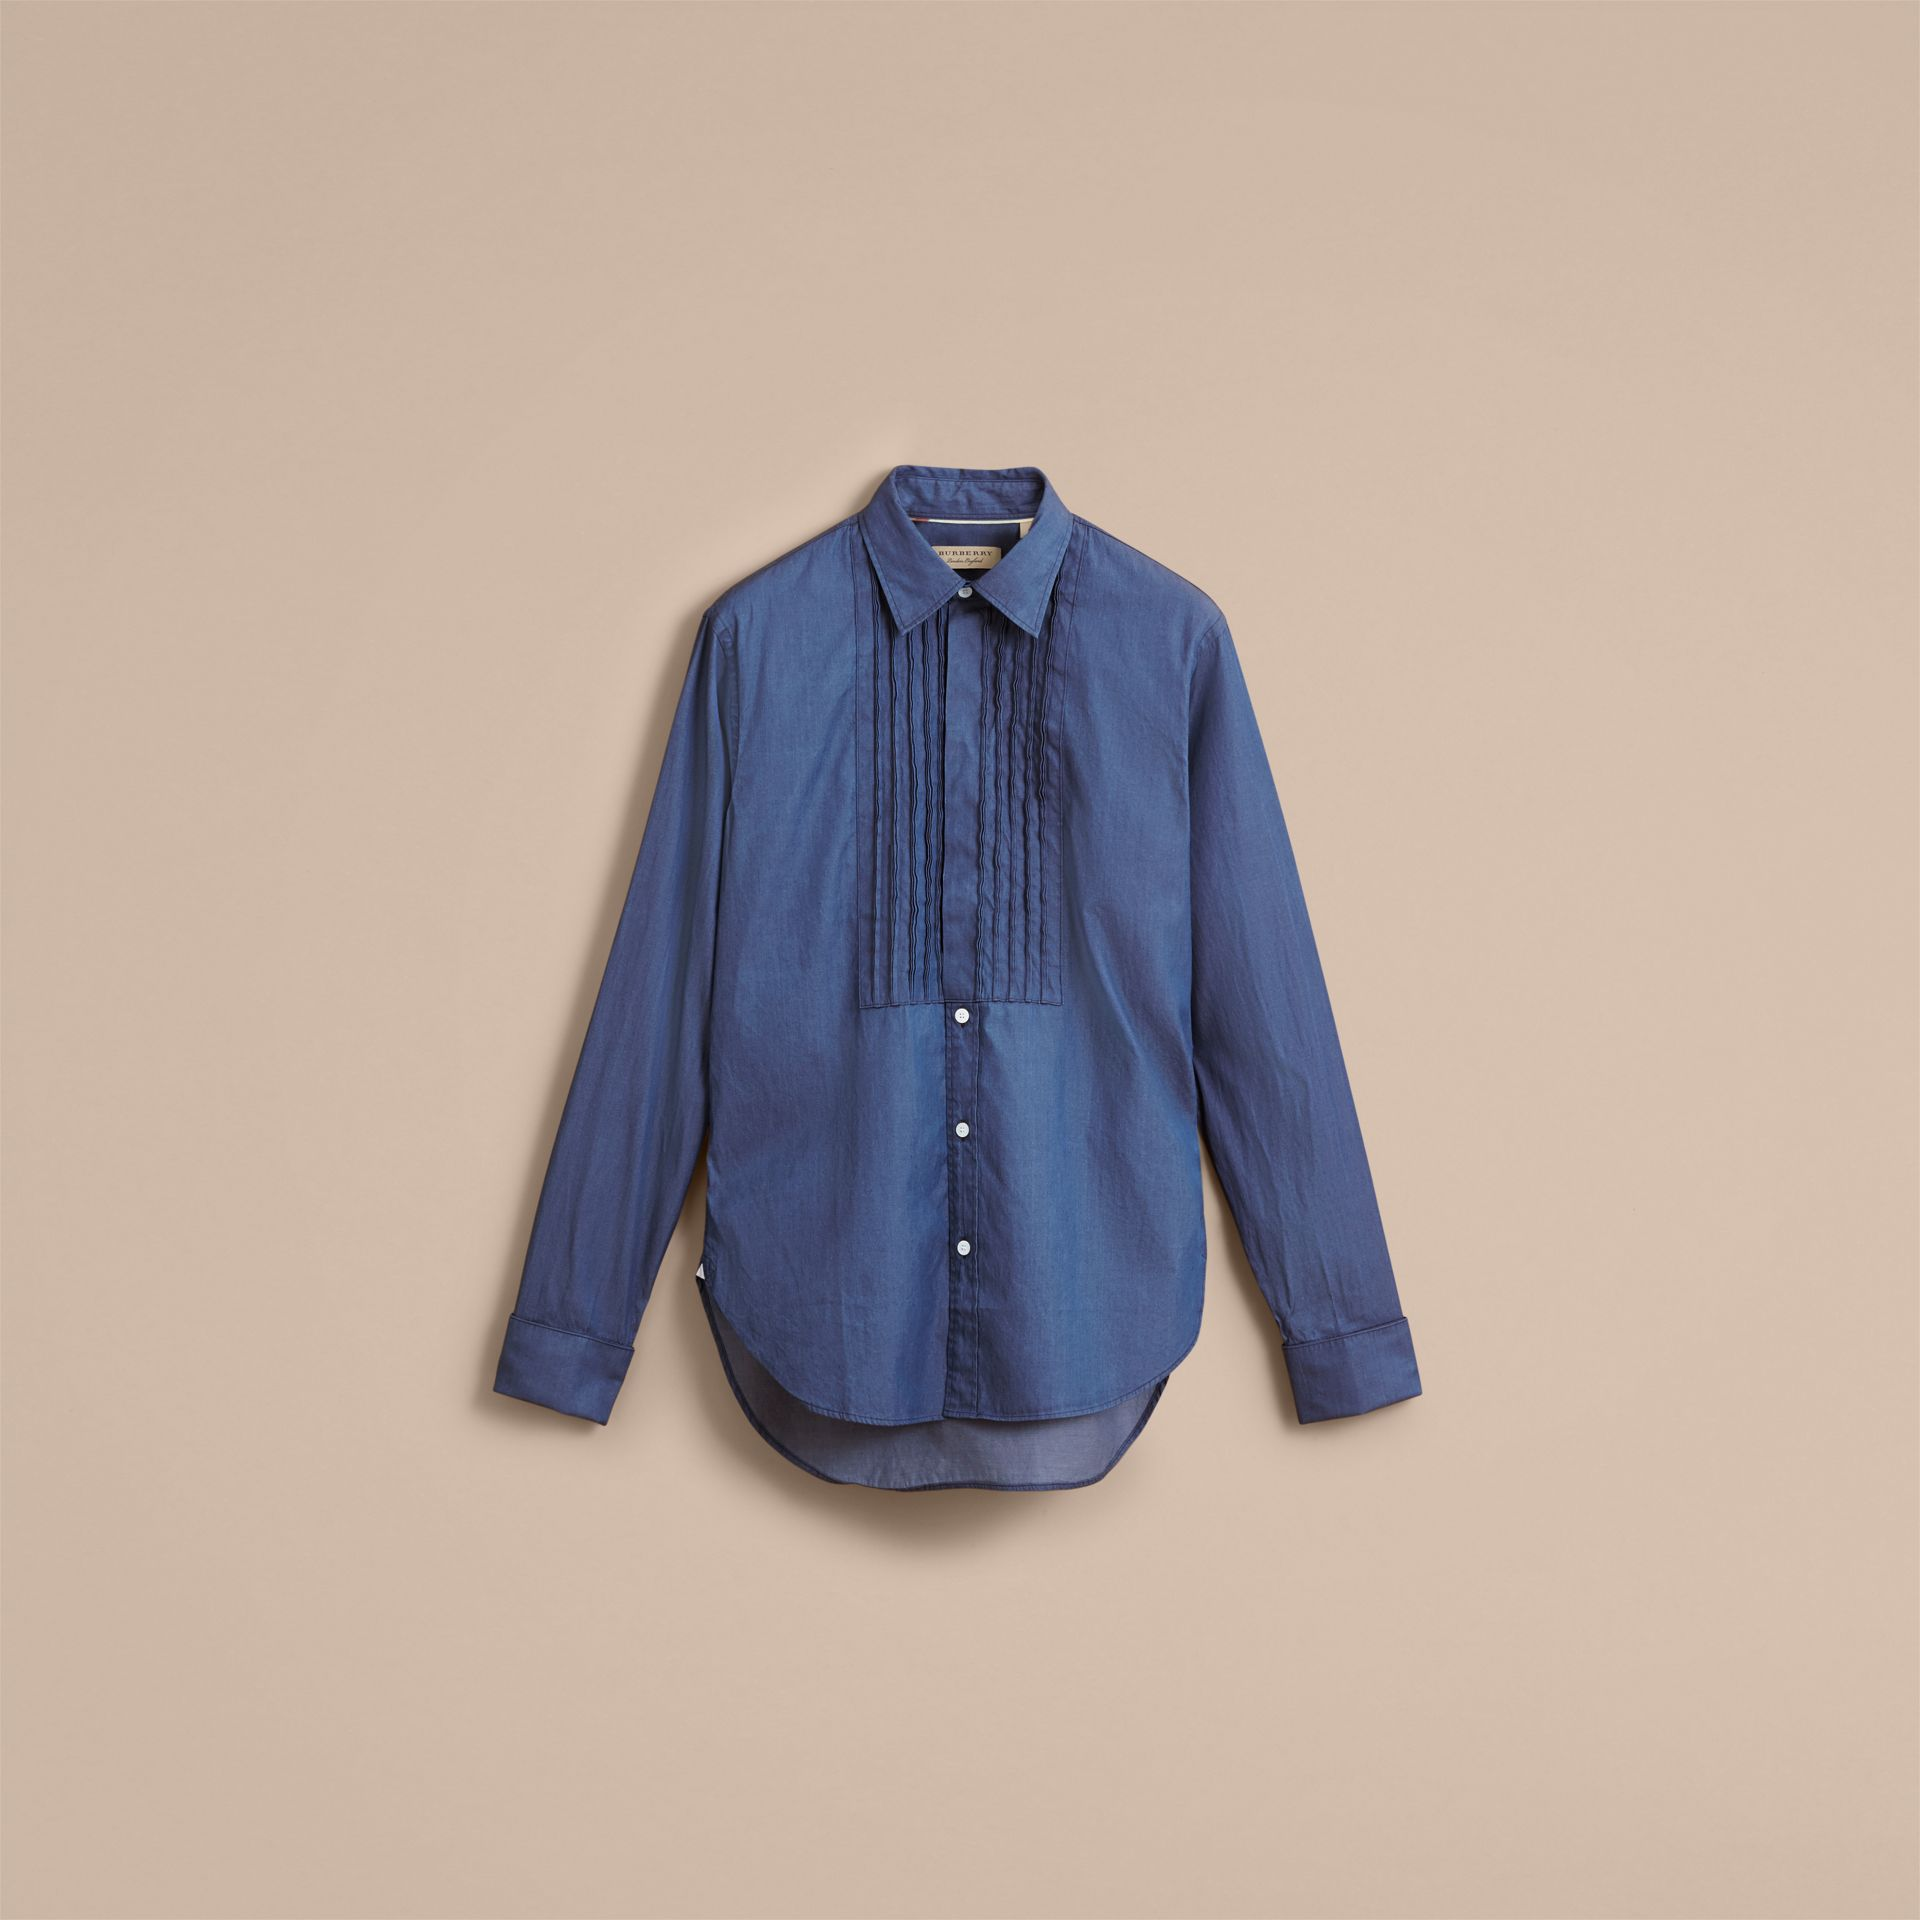 Unisex Double-cuff Pintuck Bib Cotton Shirt in Denim Blue - Women | Burberry - gallery image 4